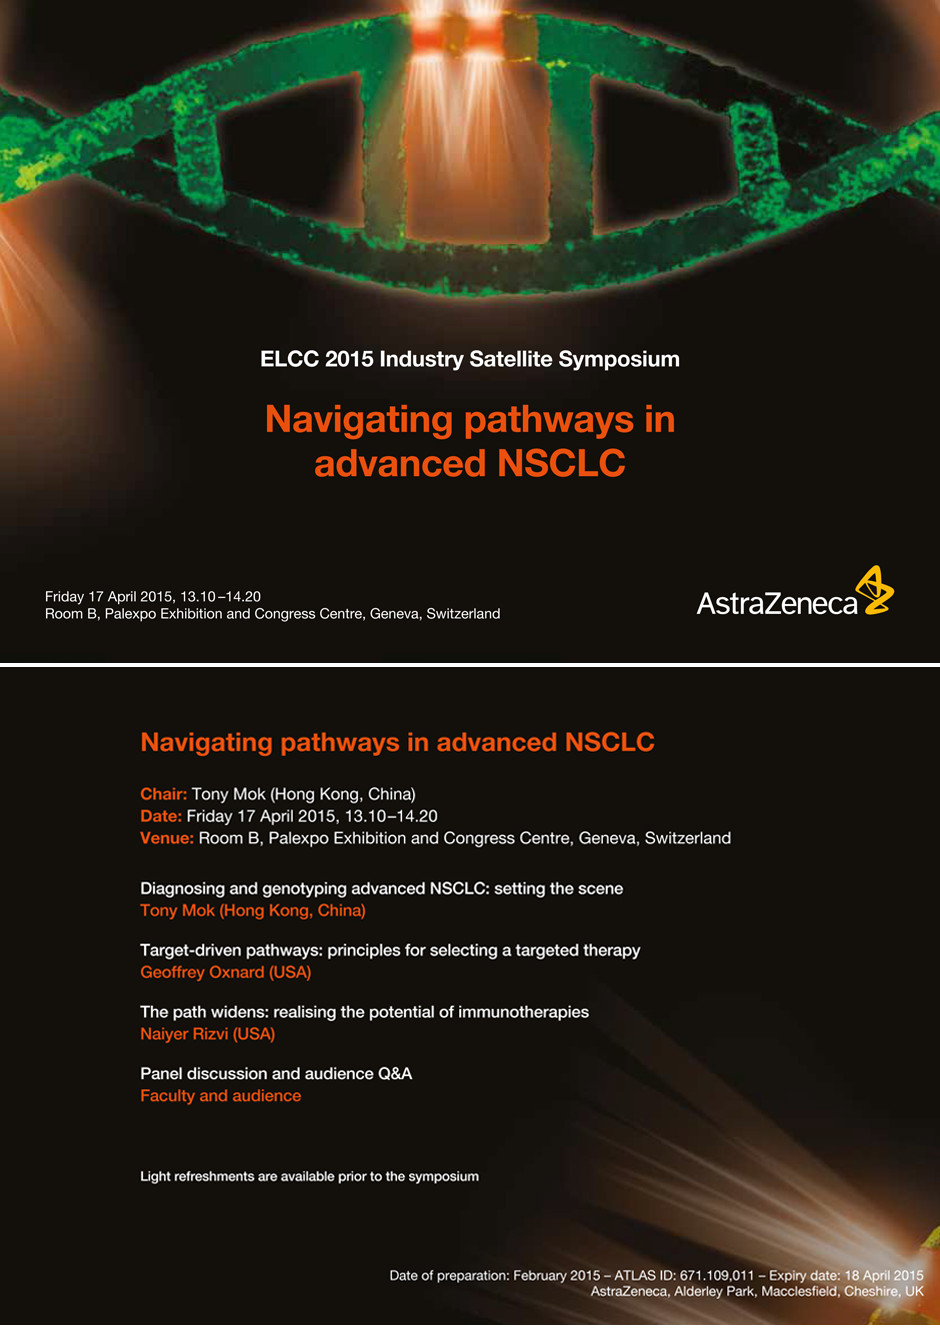 Navigating pathways in advanced NSCLC